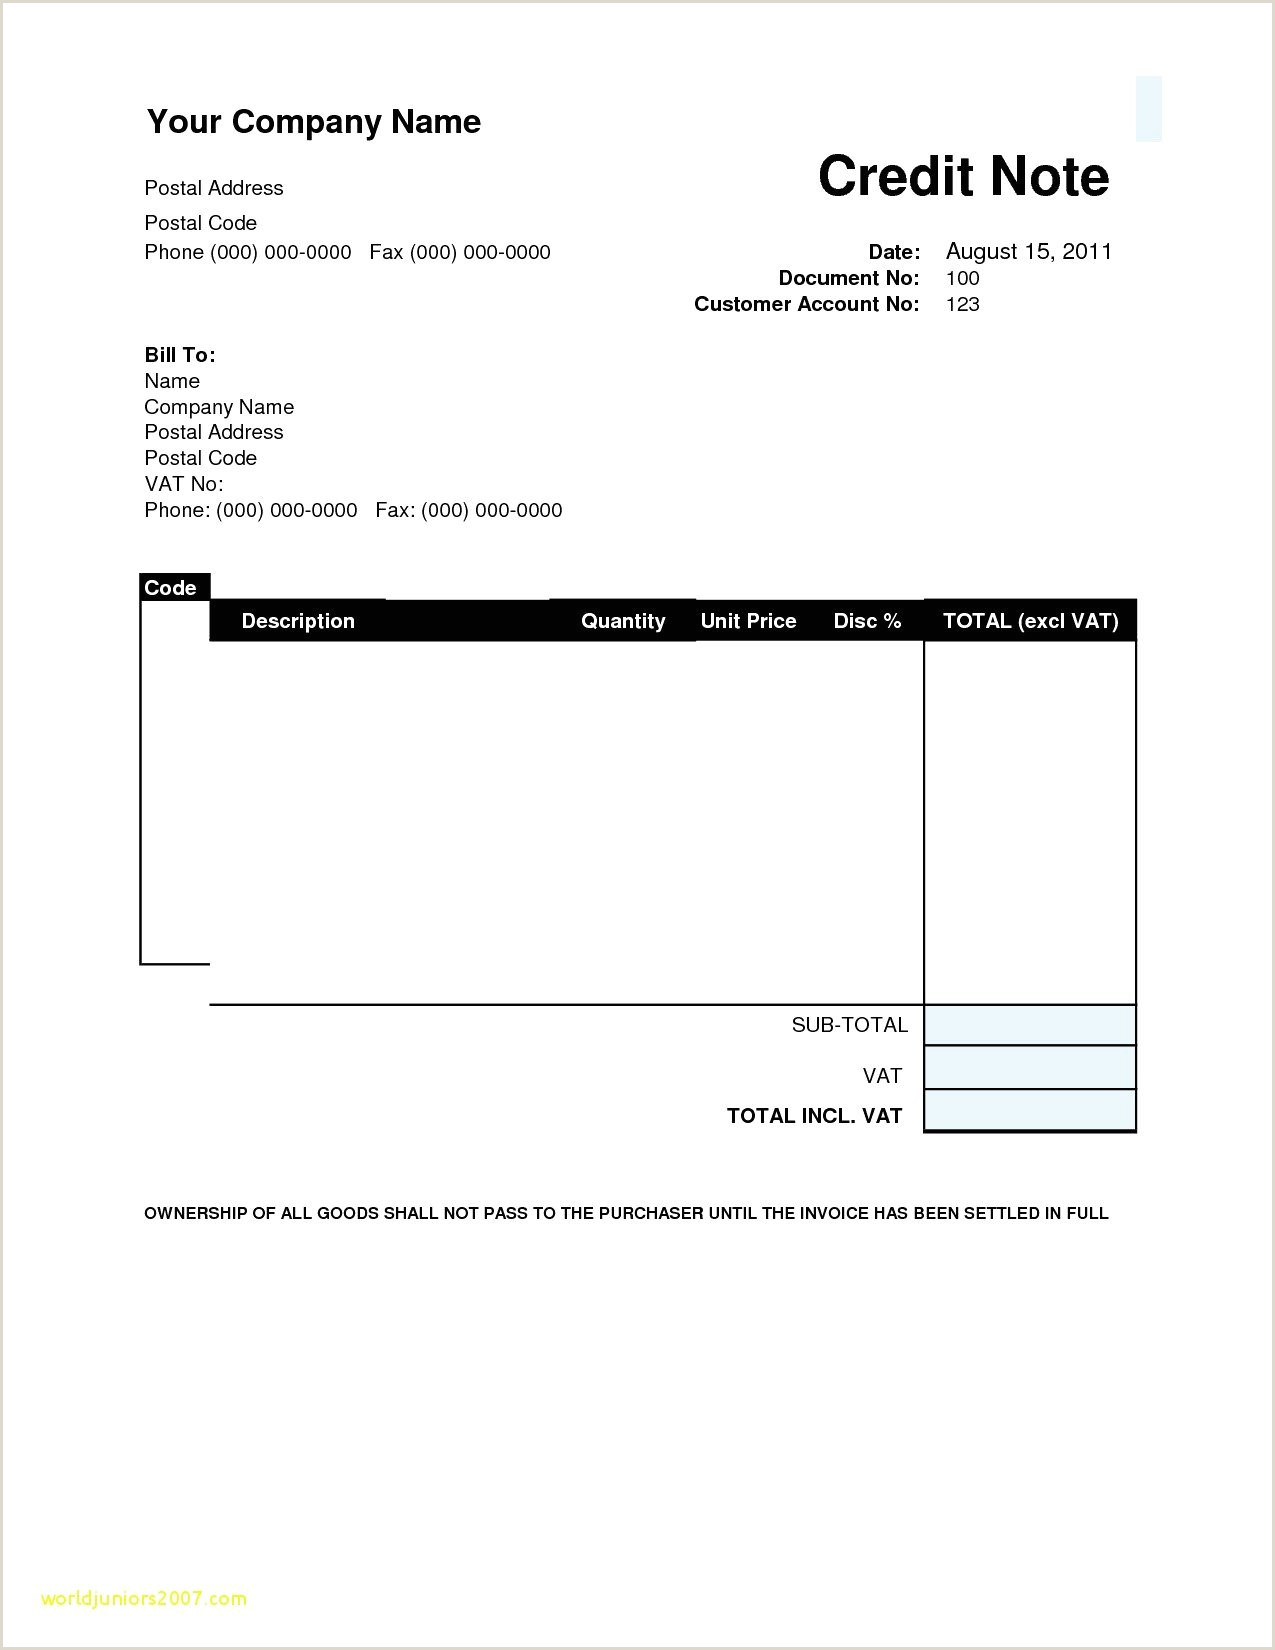 Buisness Card Layouts Police Department Business Card Templates